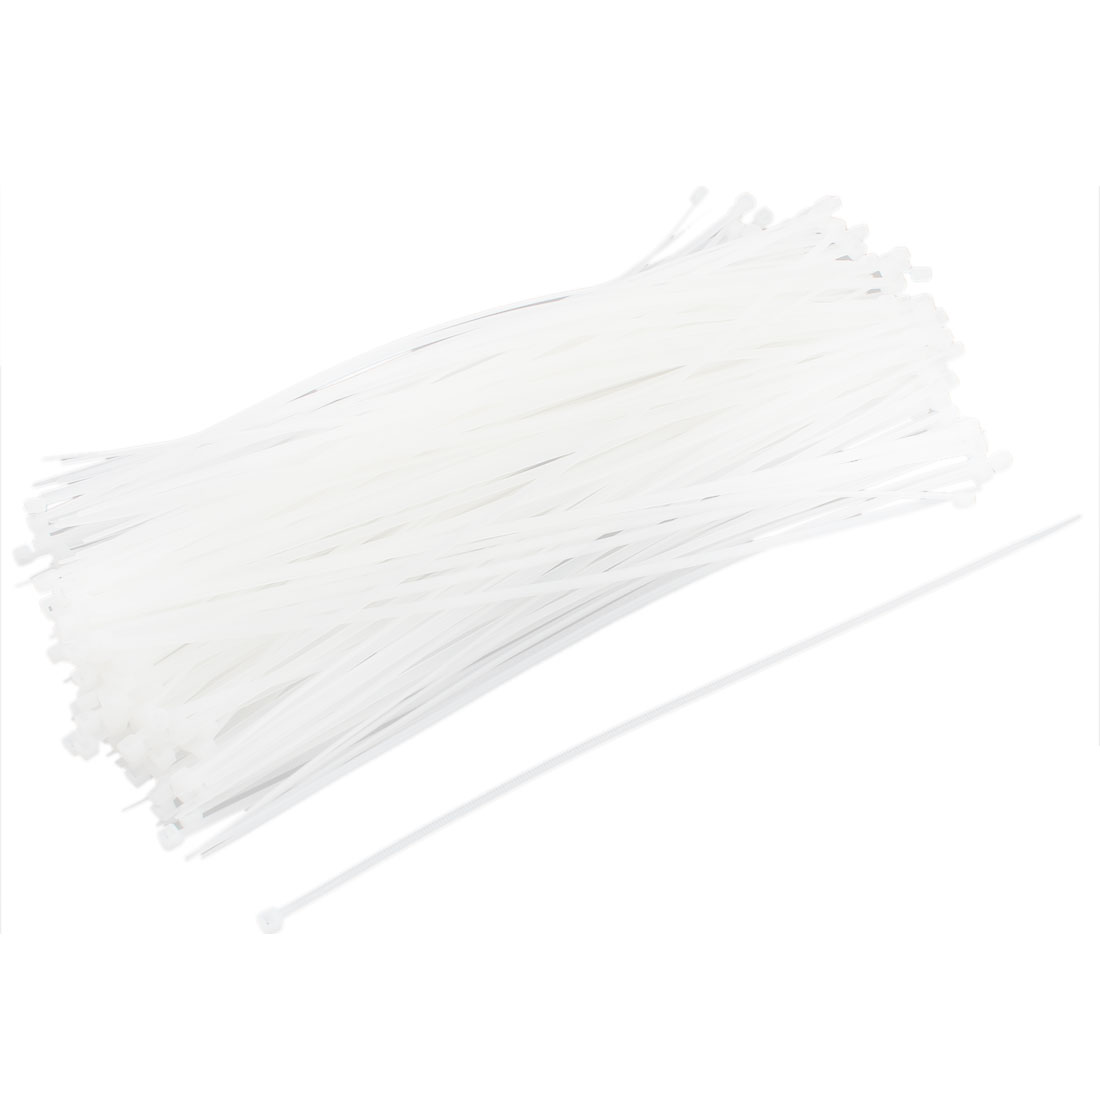 250pcs 5mmx300mm White Zip-Tie Strap Nylon Cable Tie Wire